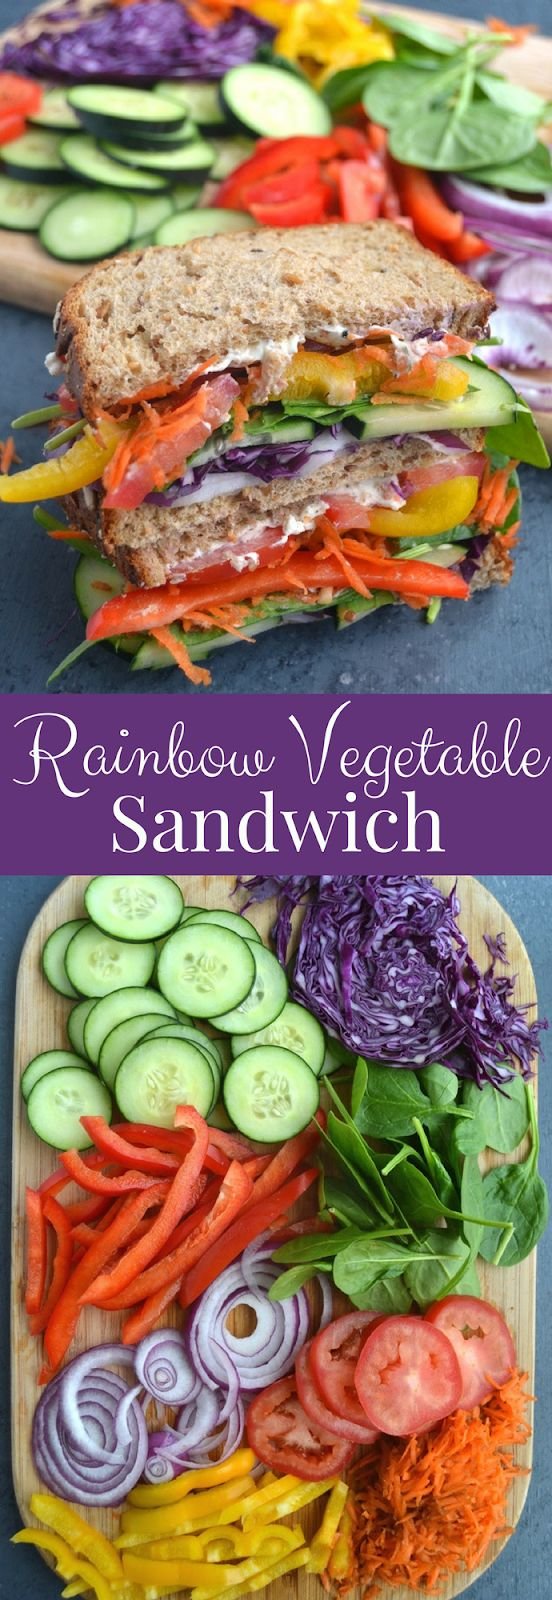 Rainbow Vegetable Sandwich